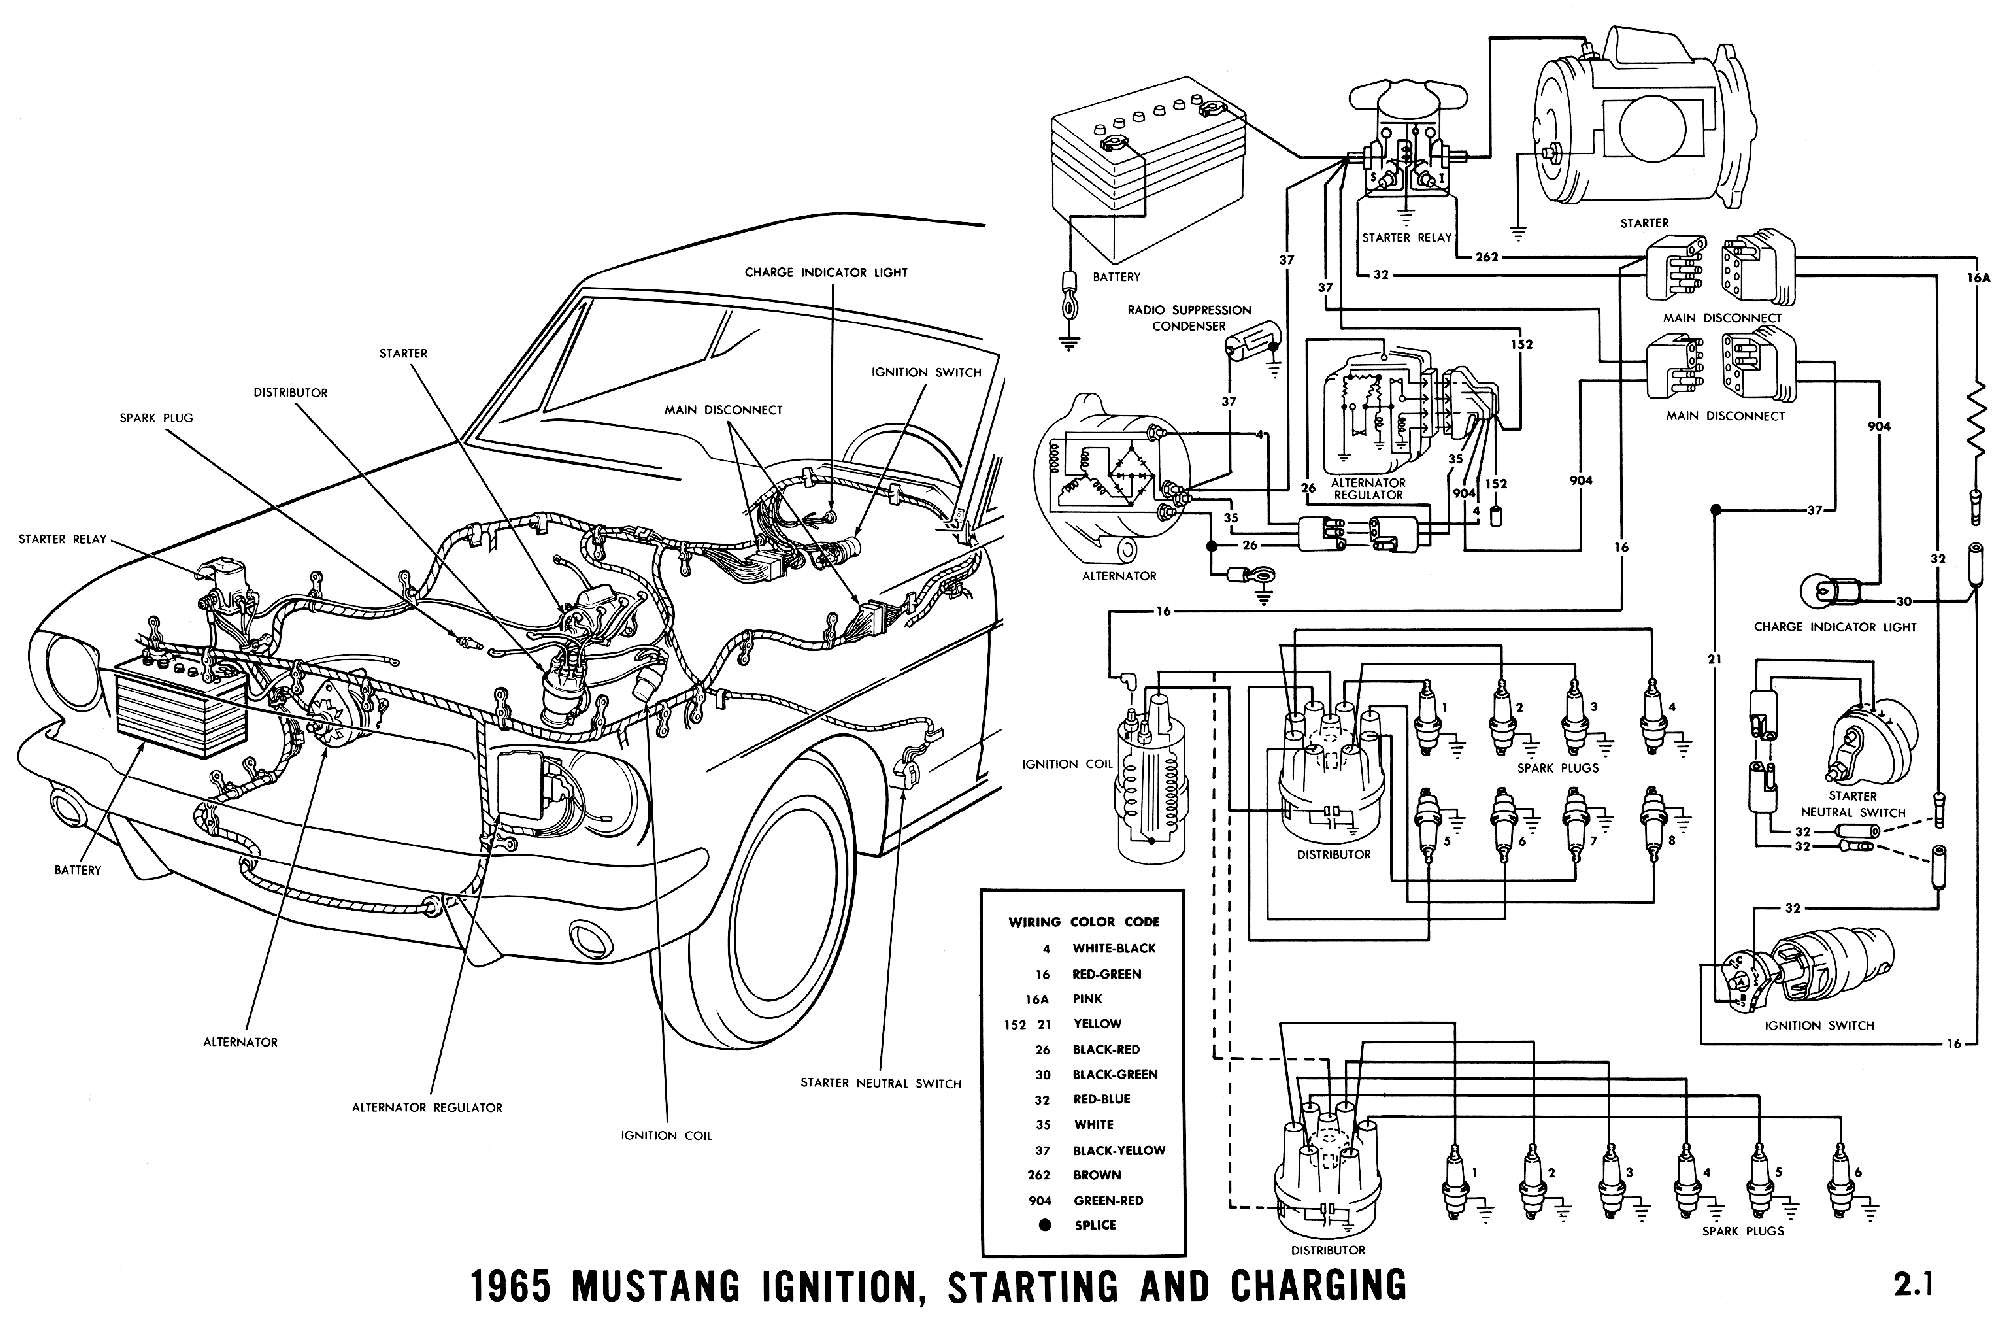 2002 ford Mustang Engine Diagram ford Mustang Wiring Diagram Blurts Of 2002 ford Mustang Engine Diagram